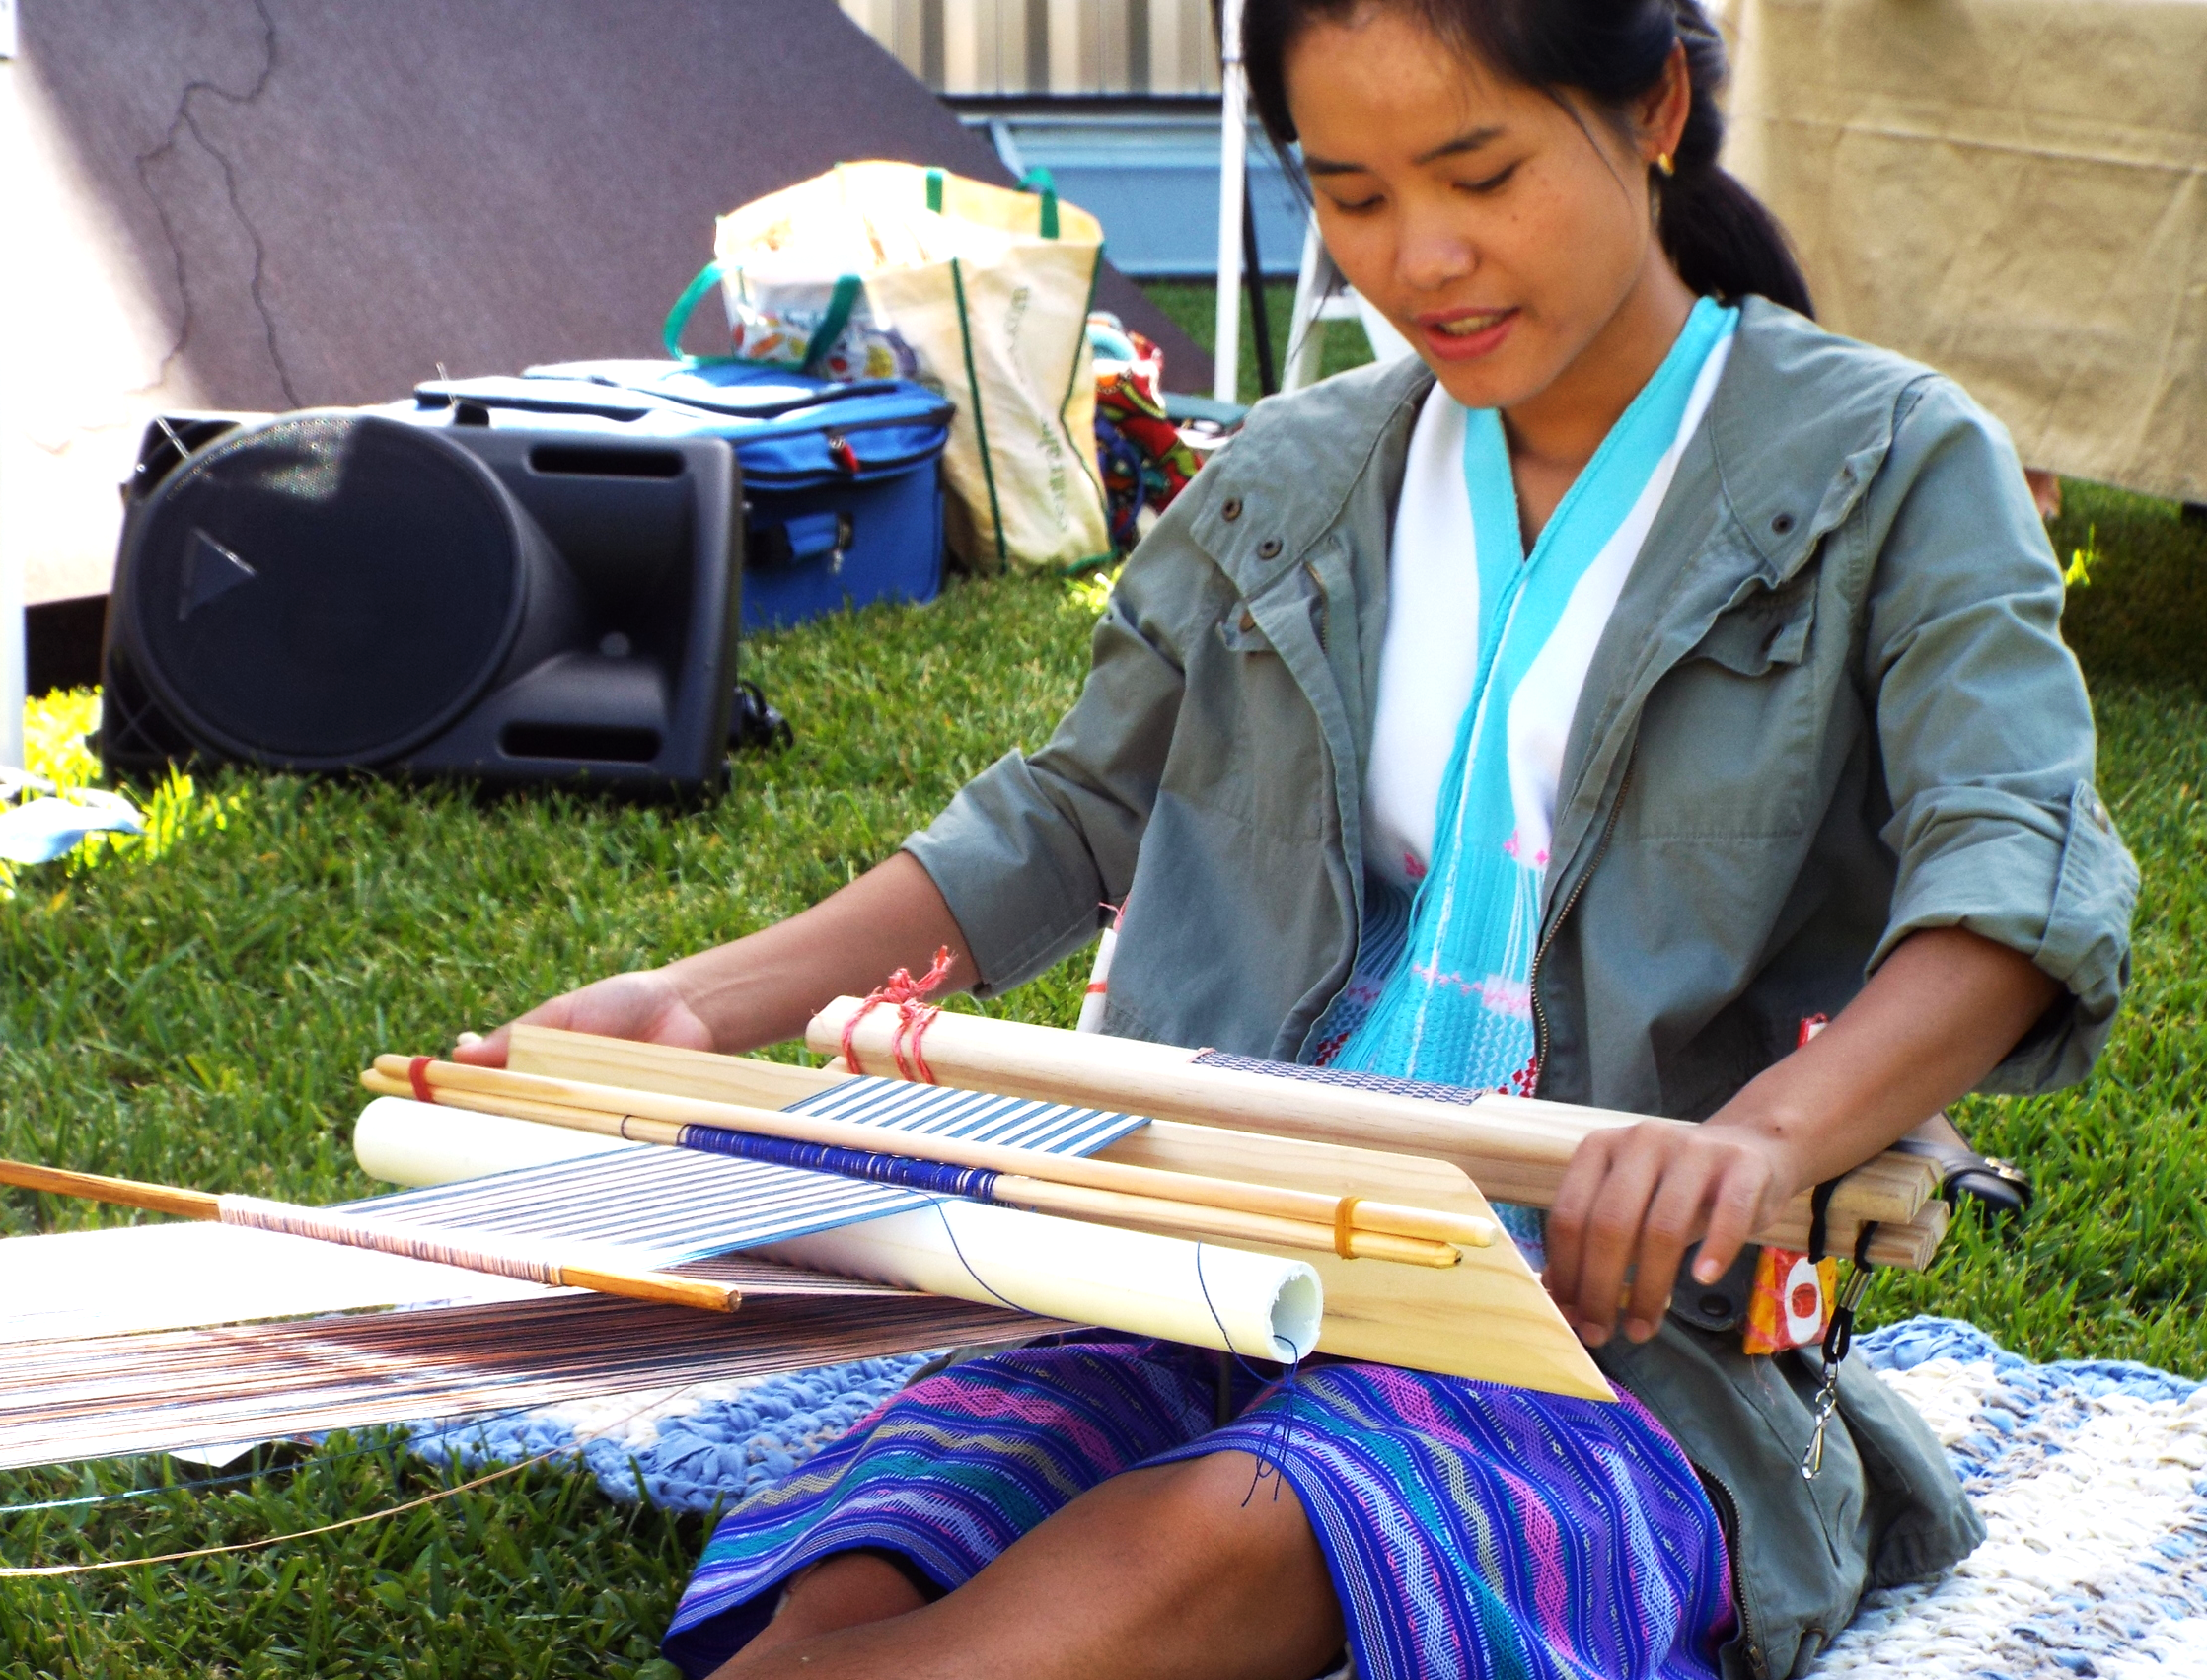 Sa Nay Ma demonstrating the art of creating scarves with a back-strap weaving loom.